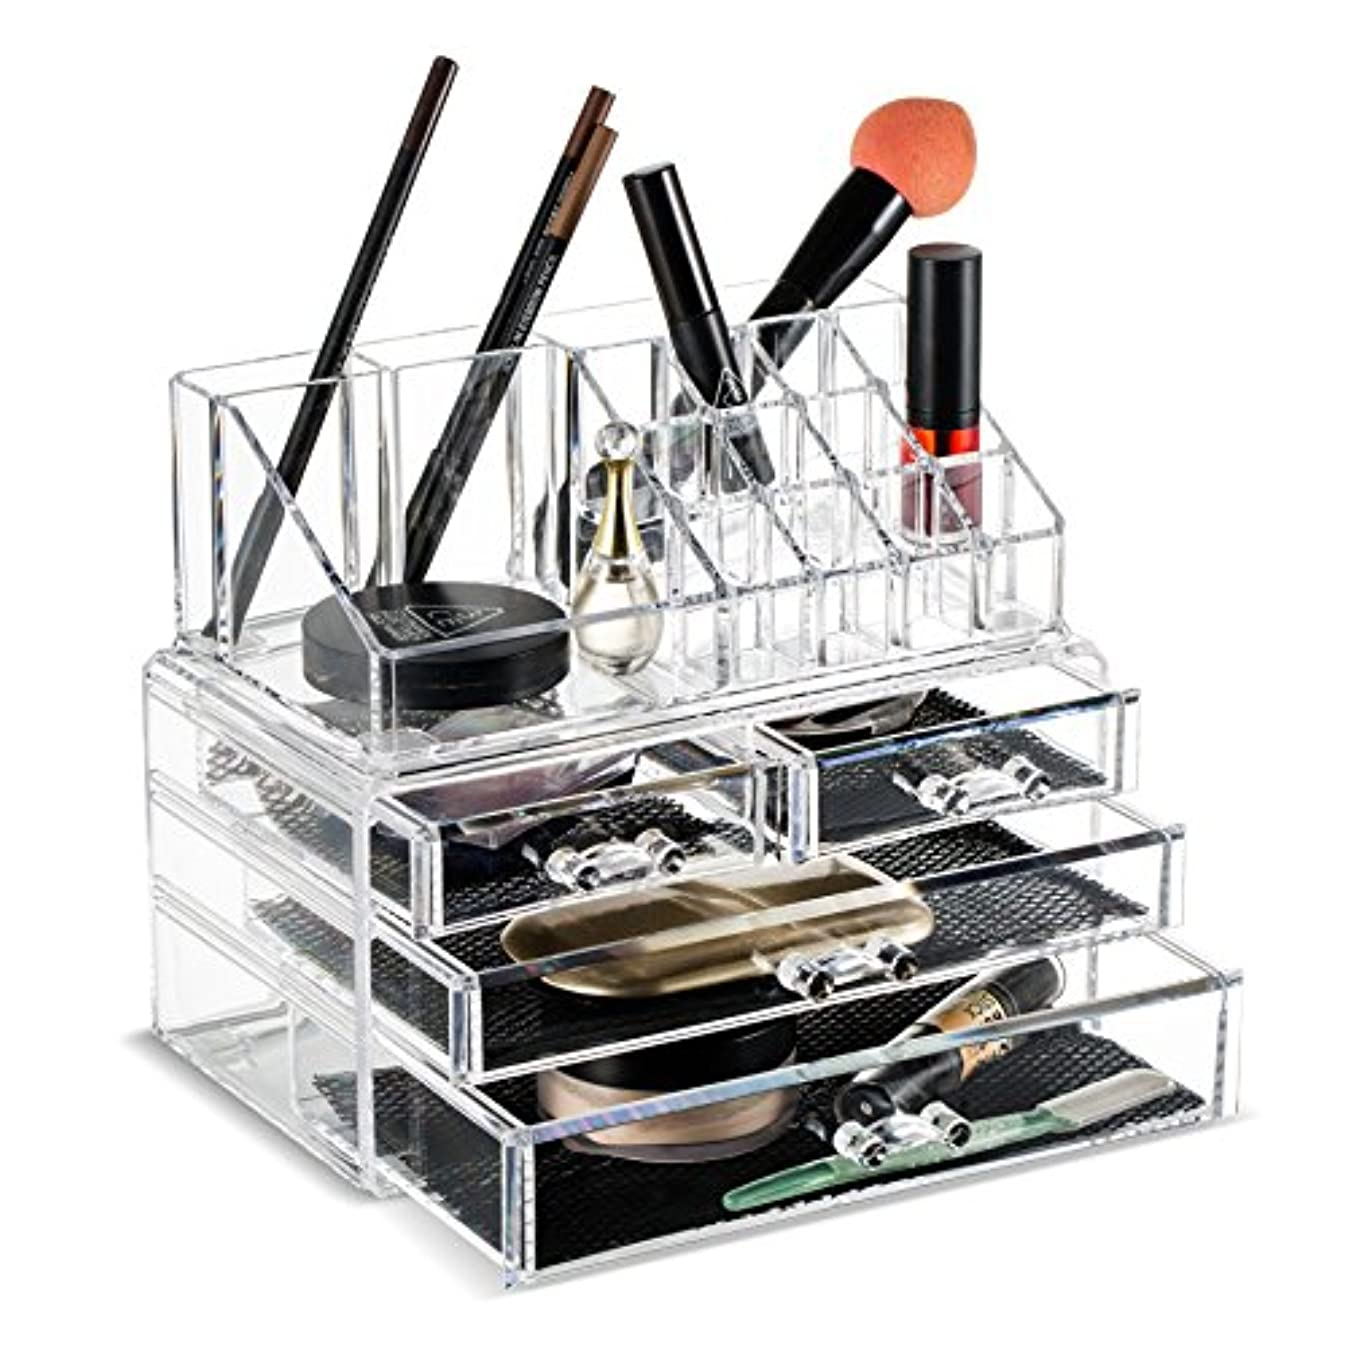 むちゃくちゃスクレーパー平行(2 Pieces Set) - Felicite Home Makeup Cosmetic Organiser Conceal/Lipstick/Eyeshadow/Brushes in One place Storage...